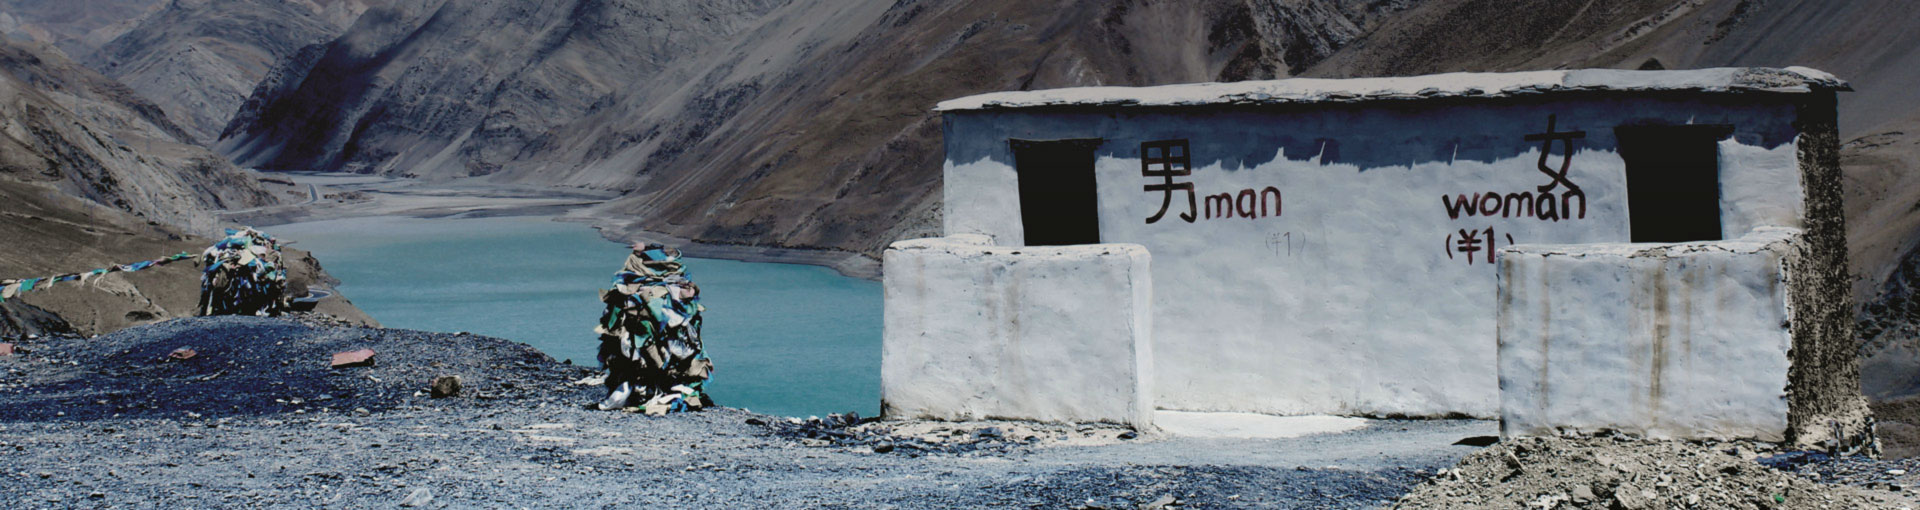 Tibet toilet lake element film